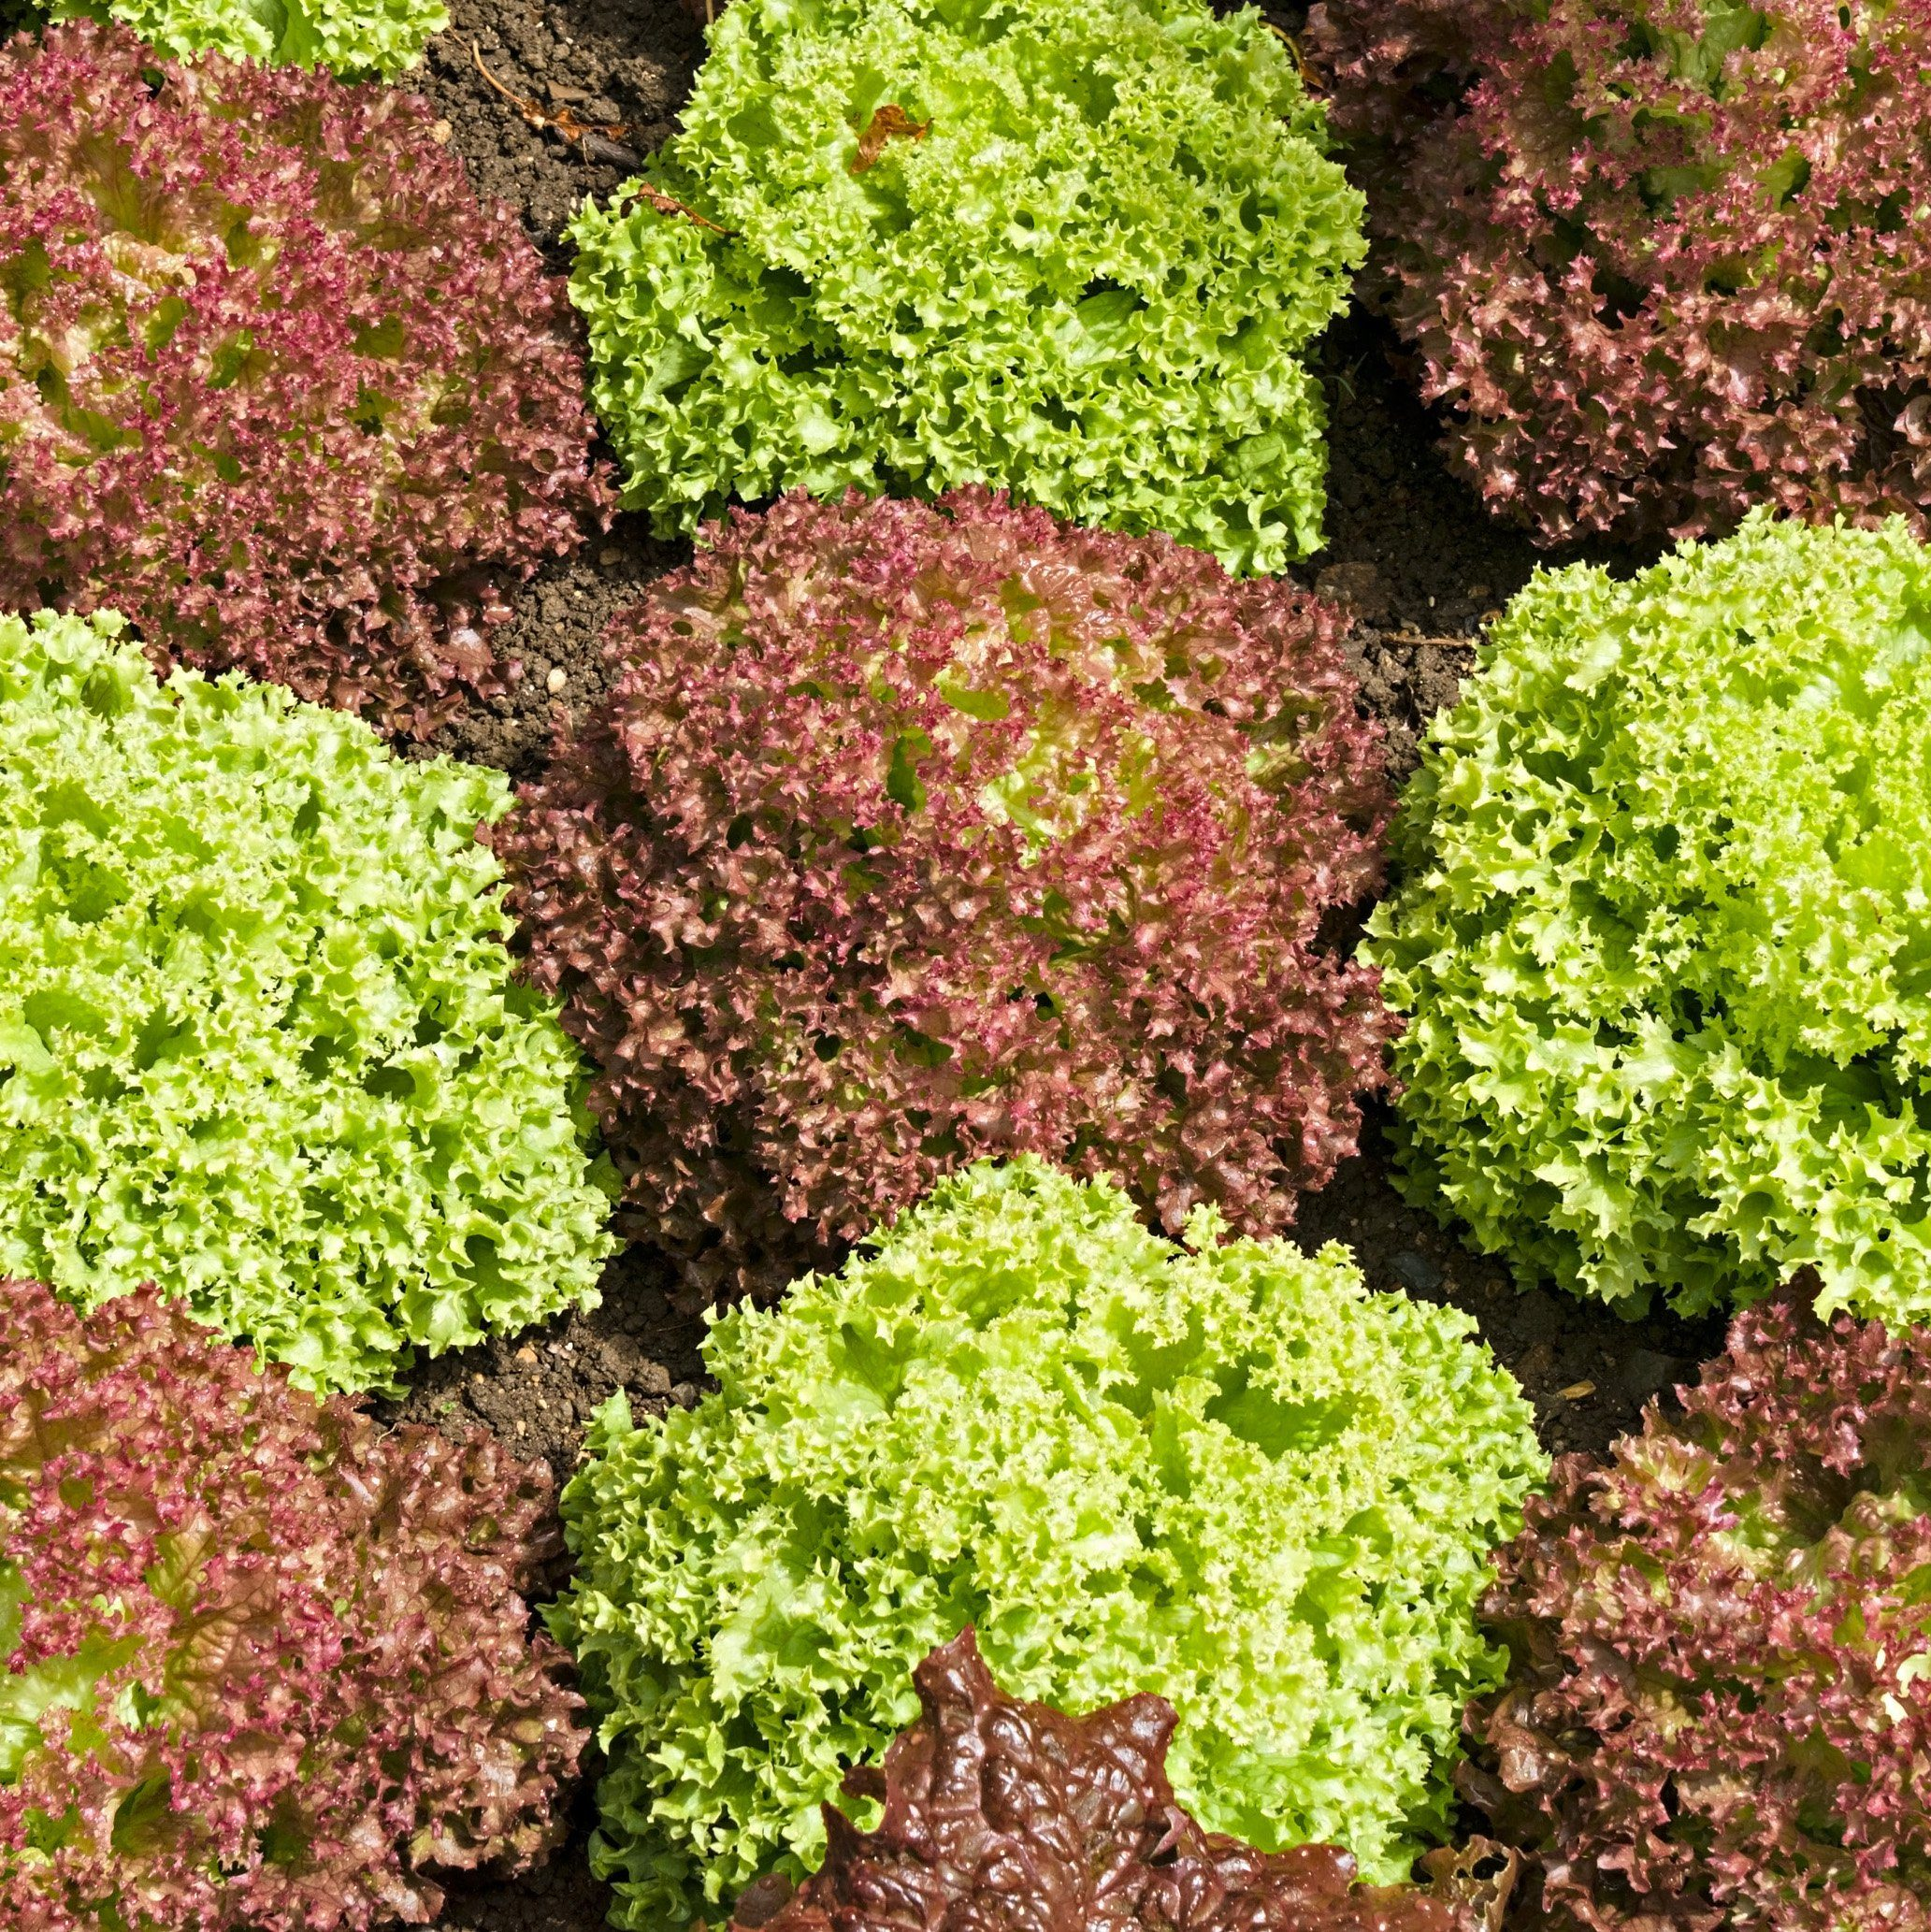 Green Lollo bionda and red Lollo rossa lettuces growing in a checkerboard pattern in vegetable salad garden, Rutland, England, UK.; Shutterstock ID 1401310733; Job (TFH, TOH, RD, BNB, CWM, CM): TOH Edible Landscaping